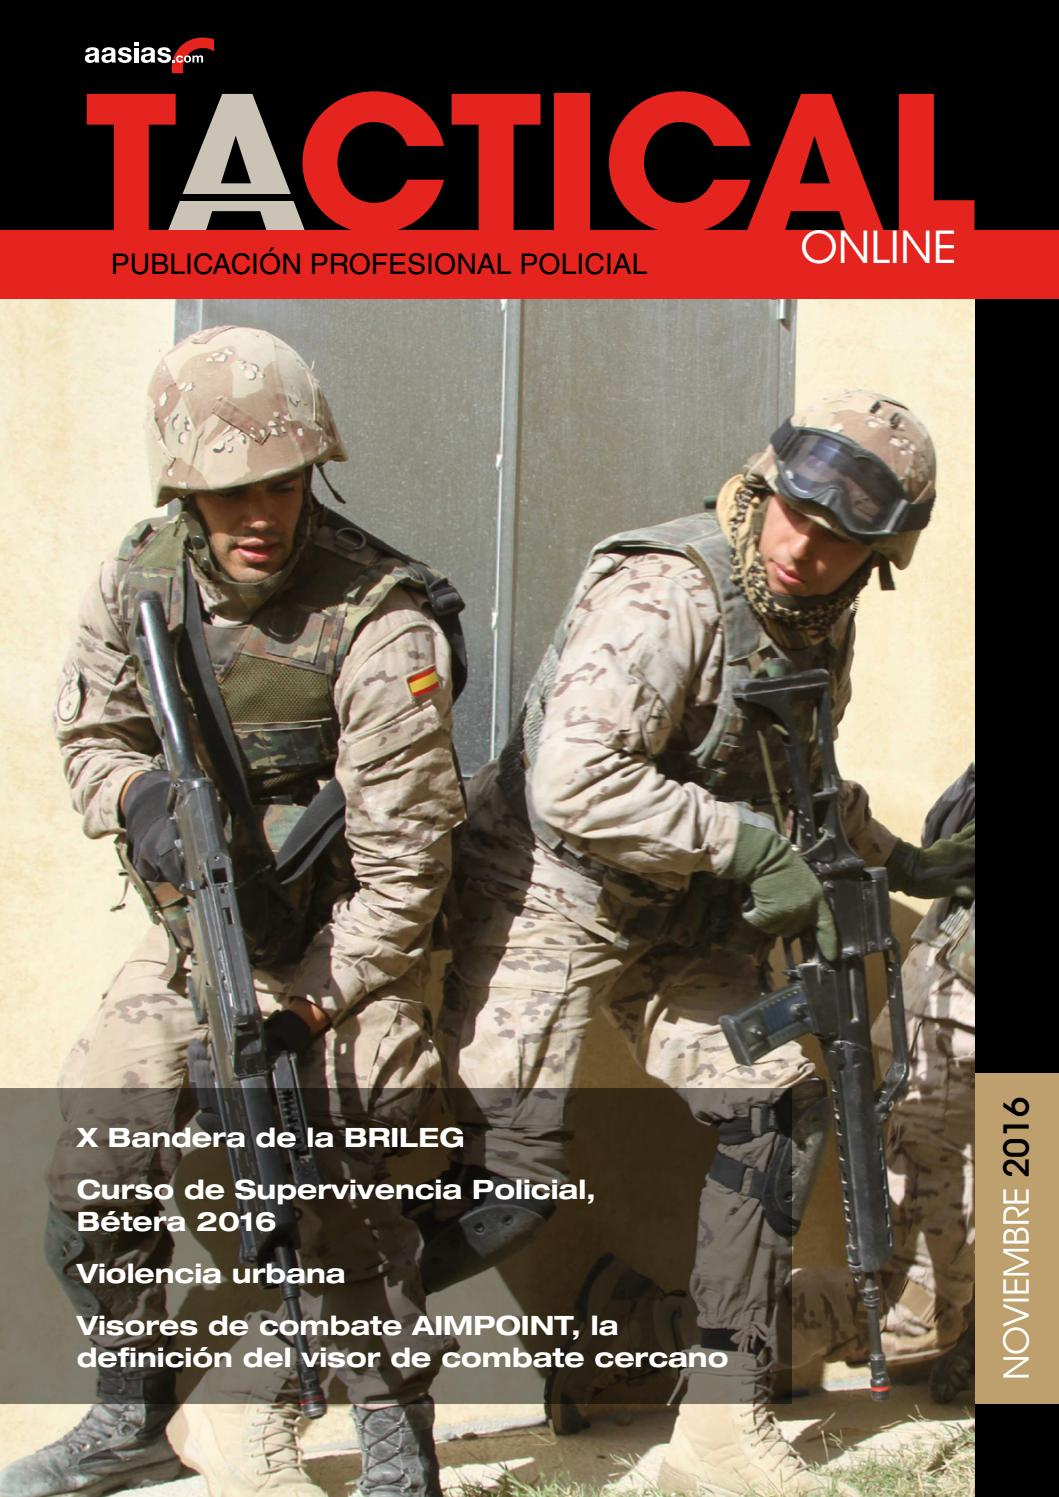 Tactical Online Noviembre 2016 by aasiascom - issuu